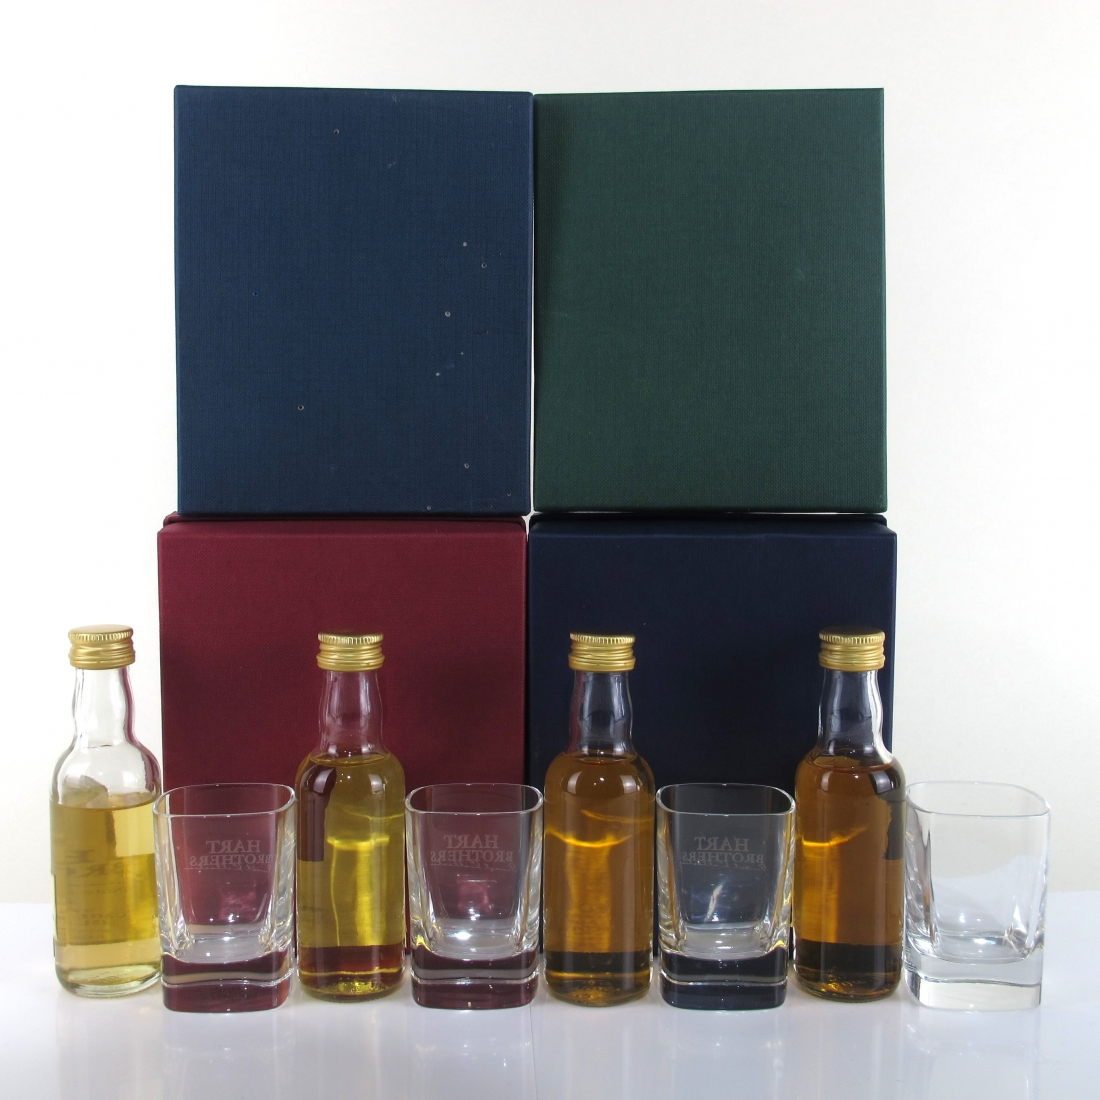 Hart Brothers Miniature Gift Pack Selection 4 x 5cl